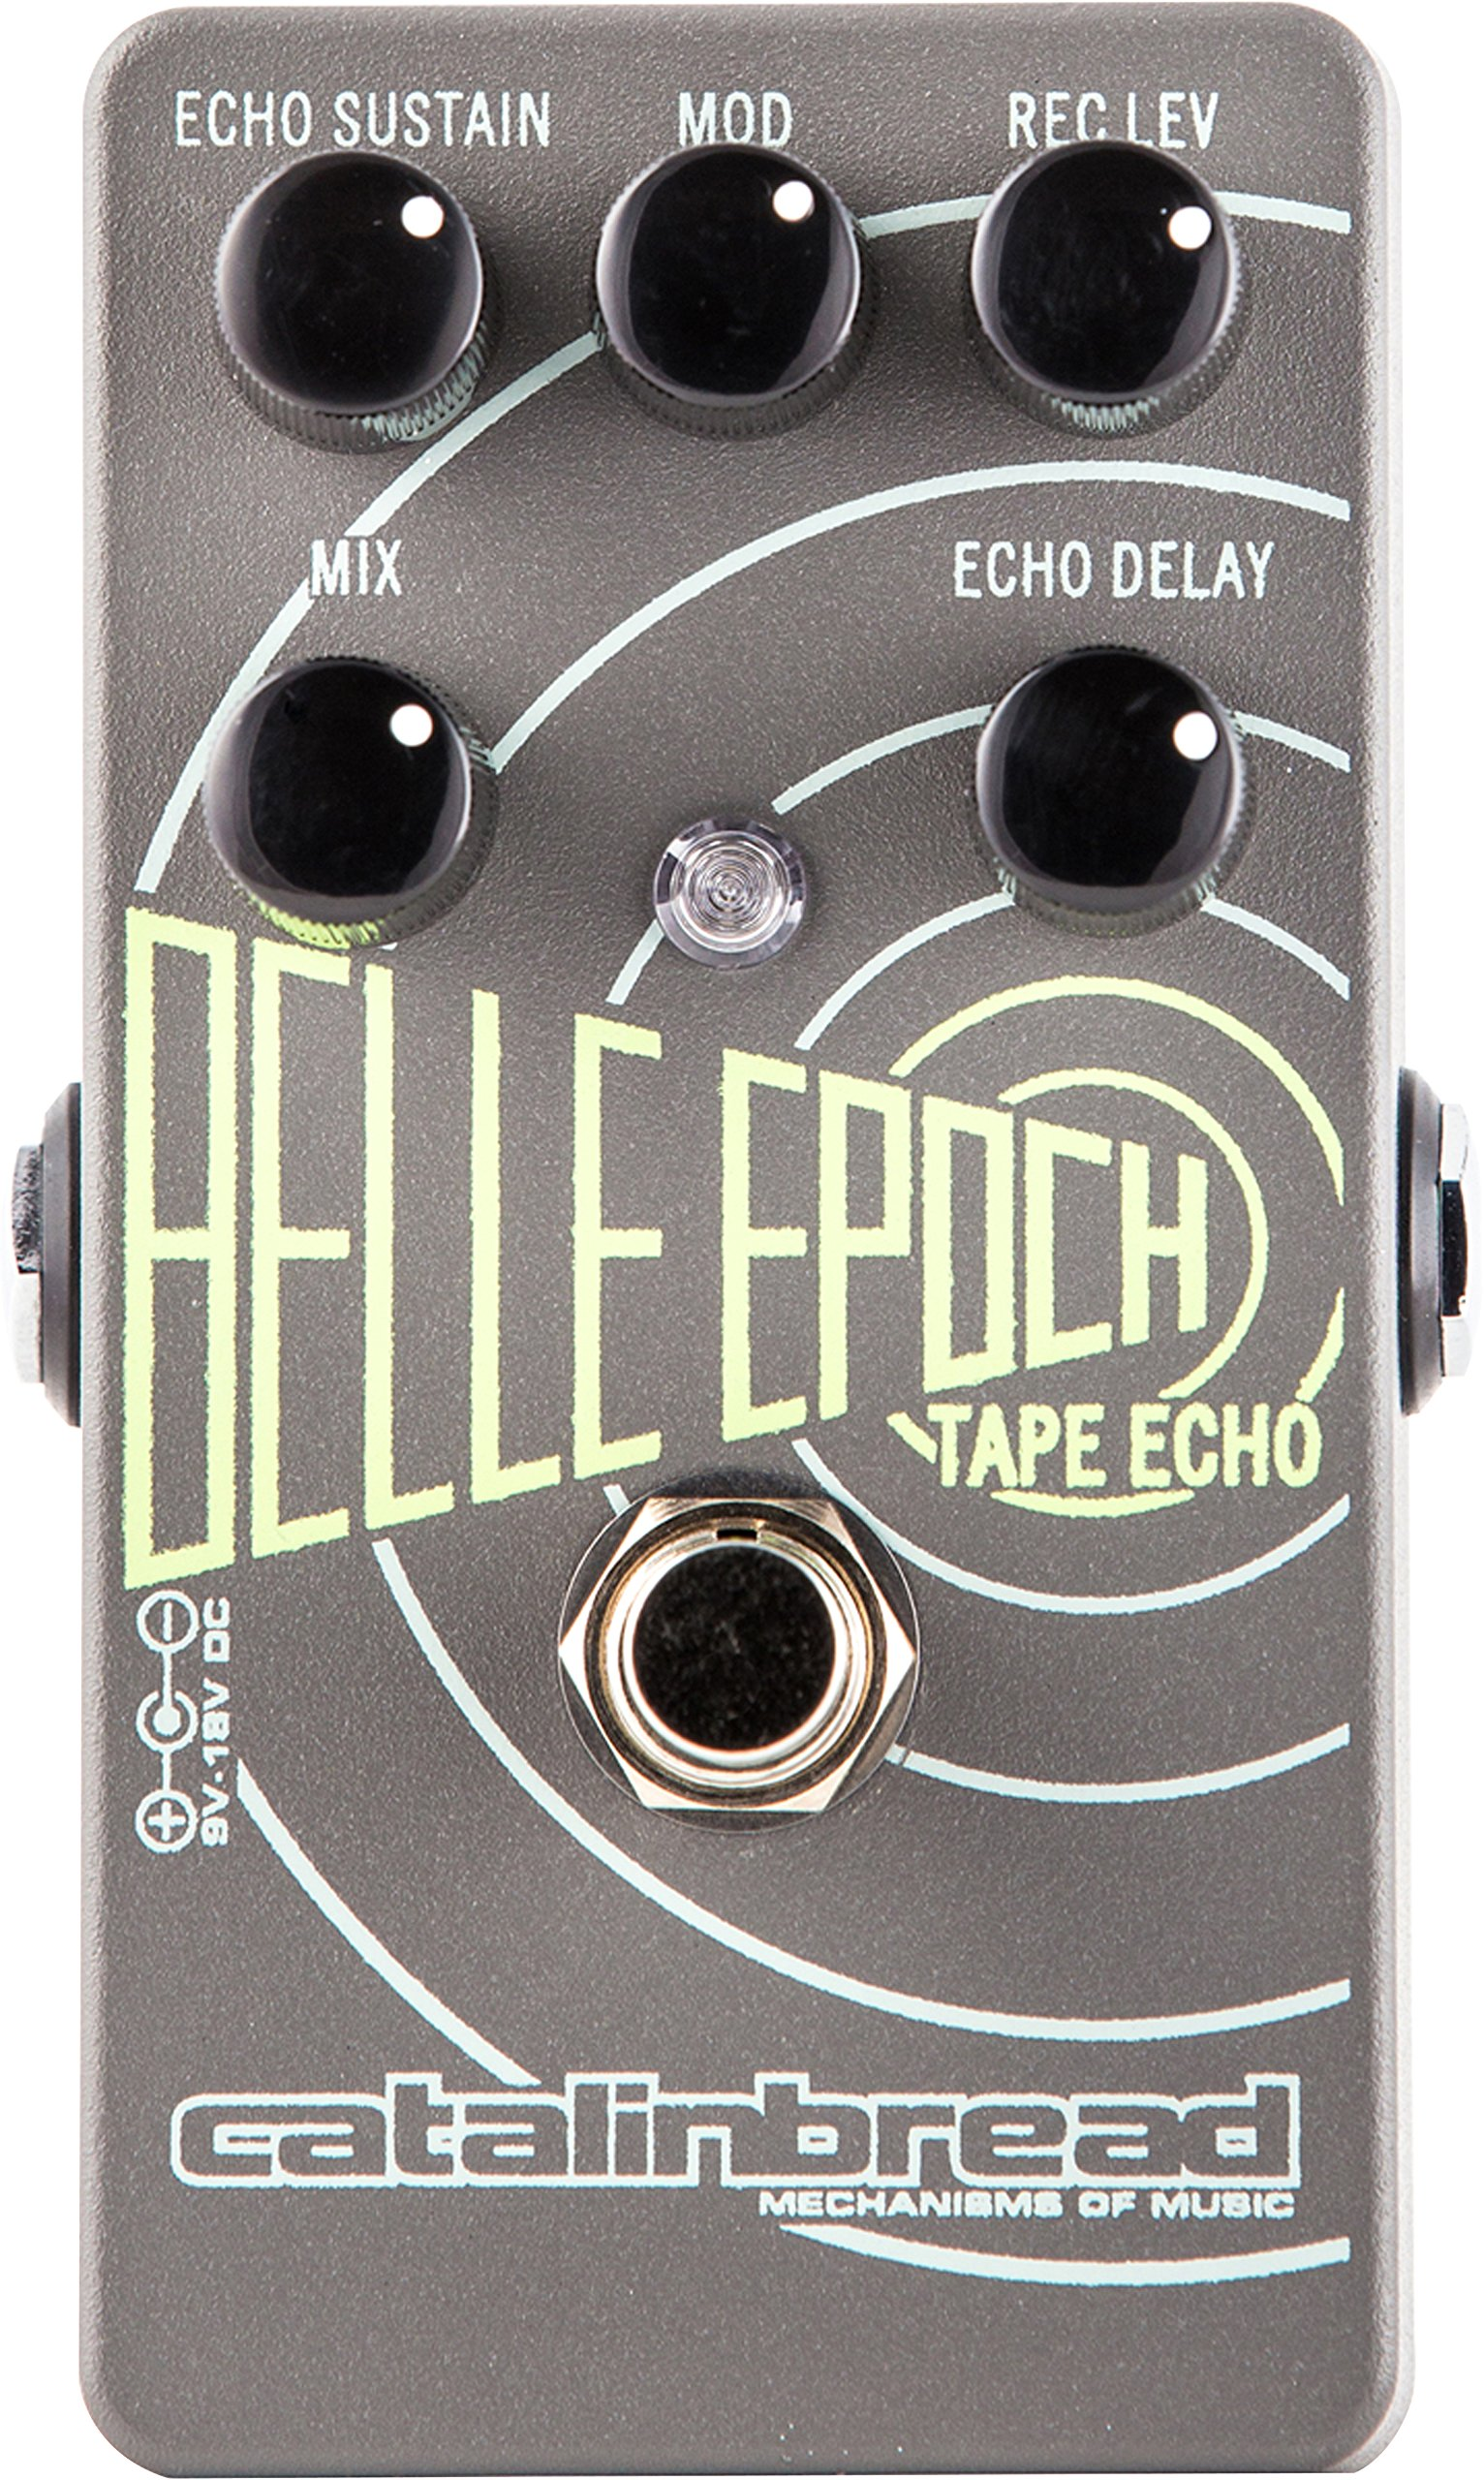 Belle Epoch EP-3 Tape Echo Guitar Effects Pedal